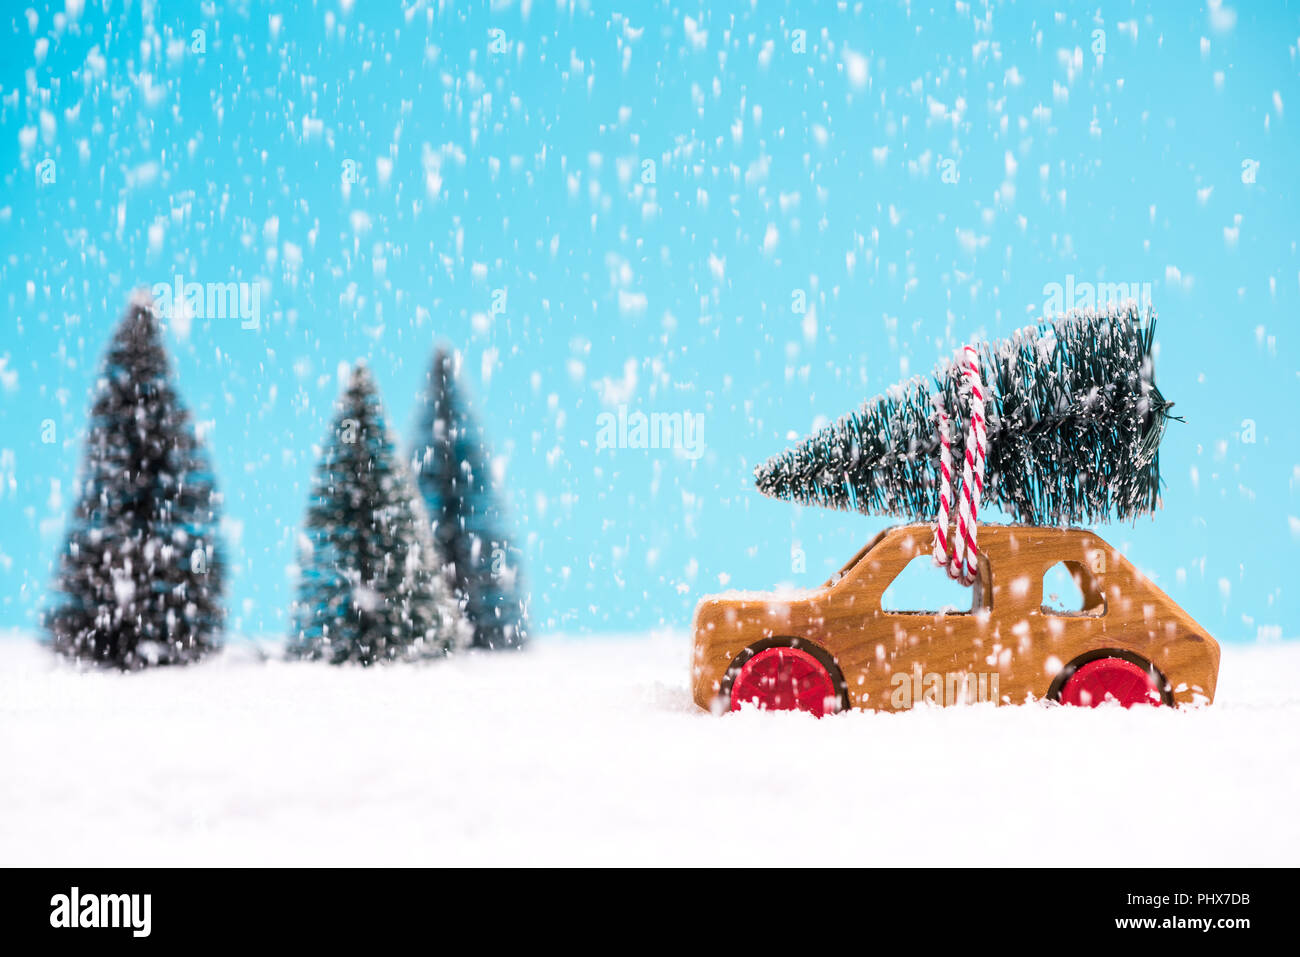 Car Carrying Christmas Tree In Winter Wonder Land Christmas